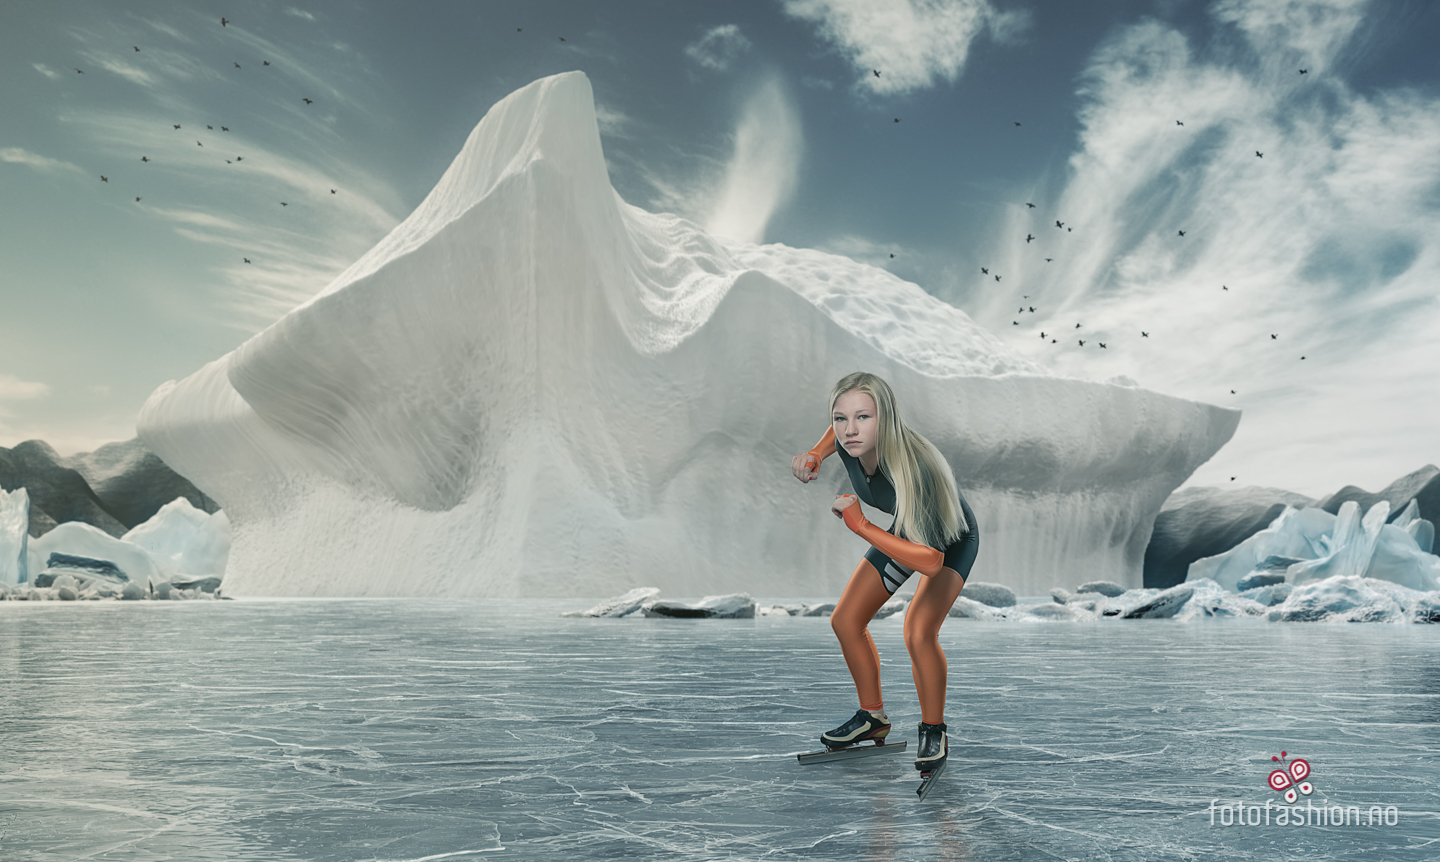 Commercial styled photo, ice skater